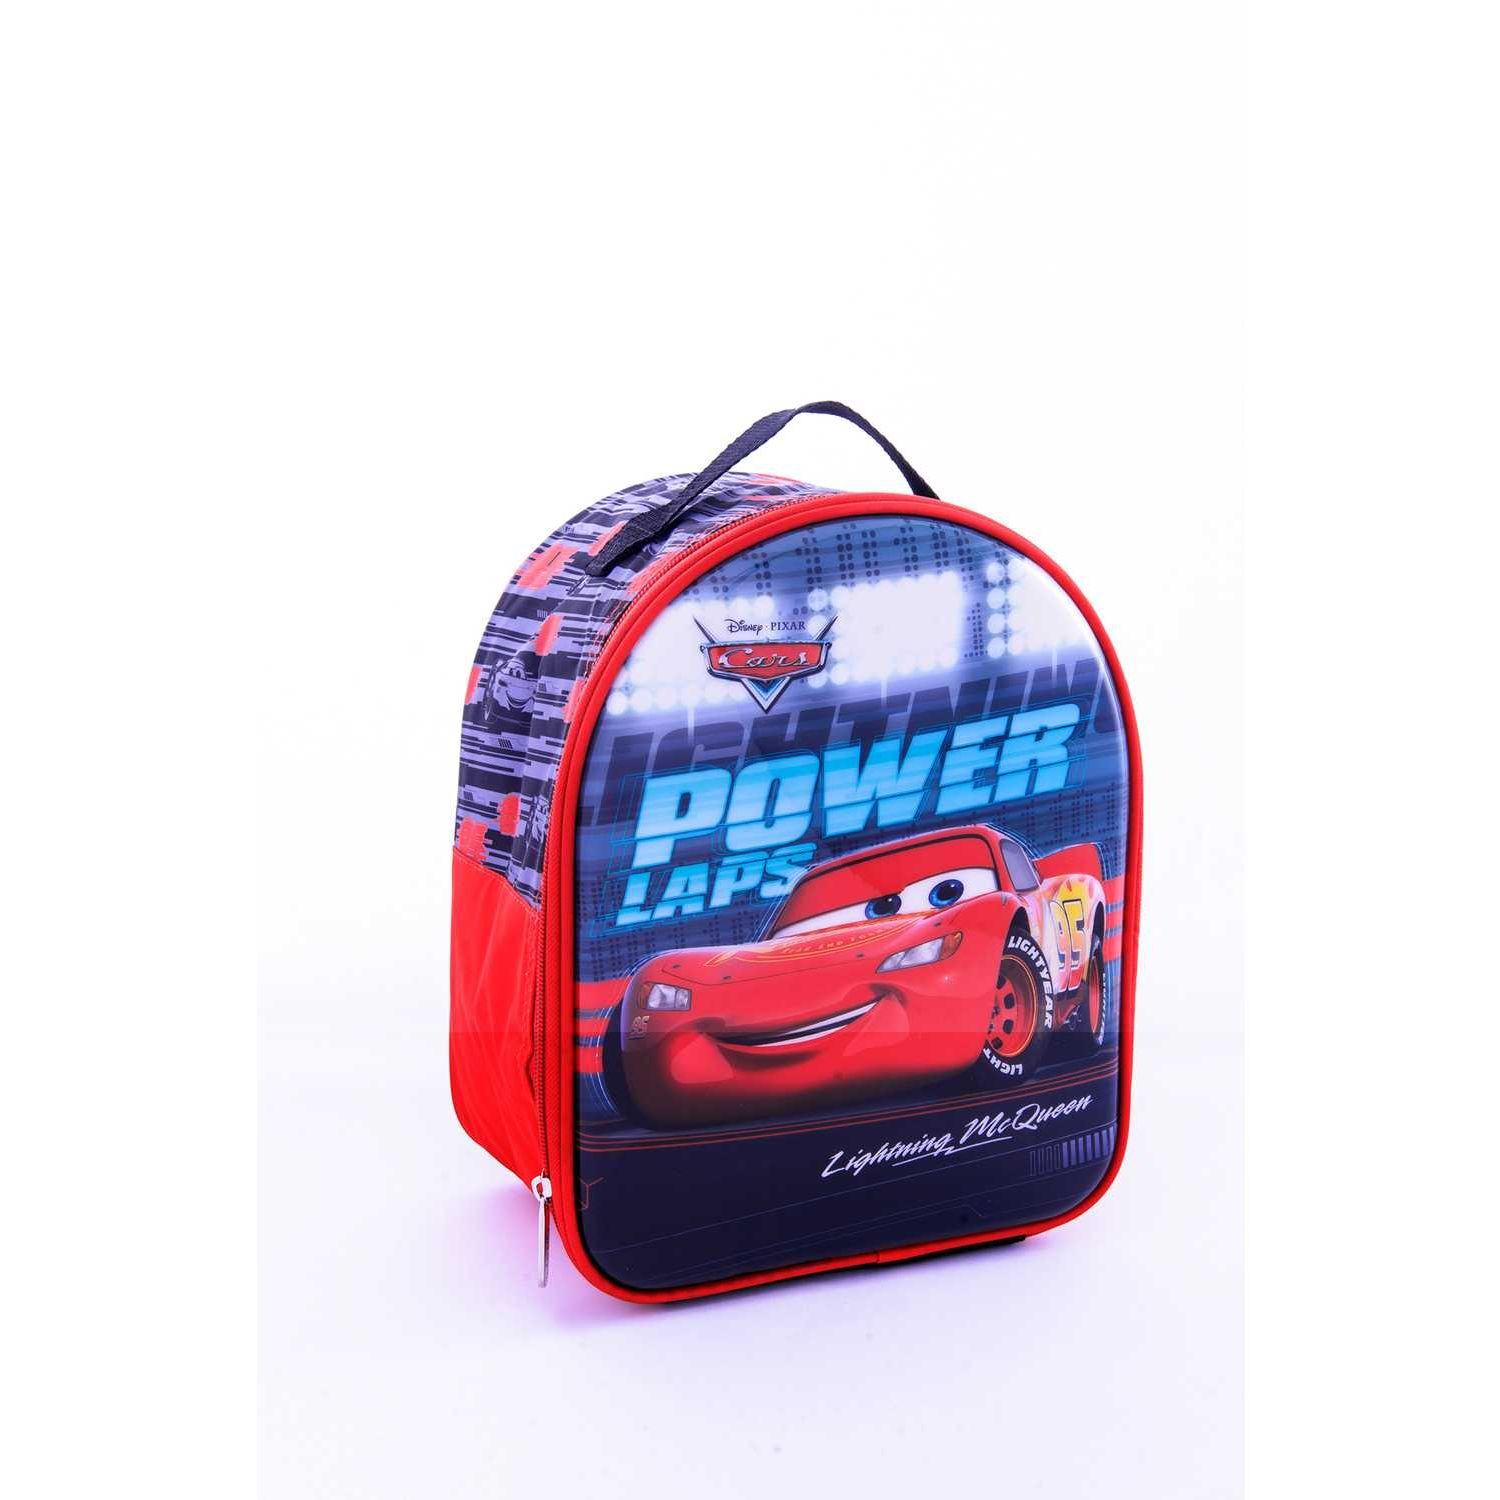 Lonchera de Niño Scool Negro 9 scool cars lonch strong dlx